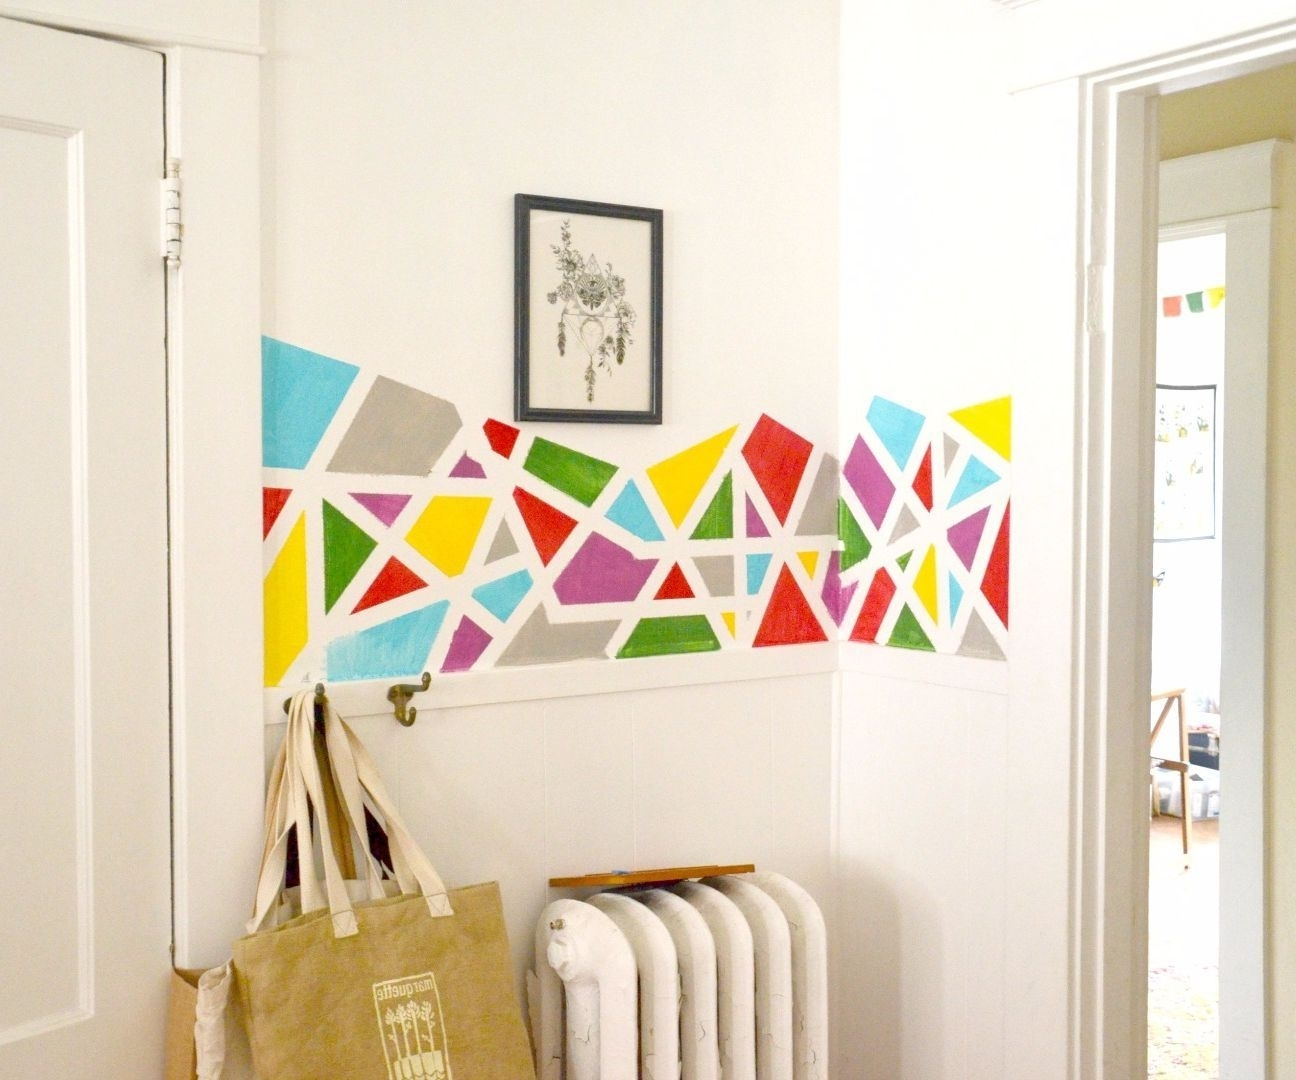 Geometric Wall Art With Regard To Most Recent Popular Geometric Wall Art — Zachary Horne Homeszachary Horne Homes (Gallery 5 of 20)